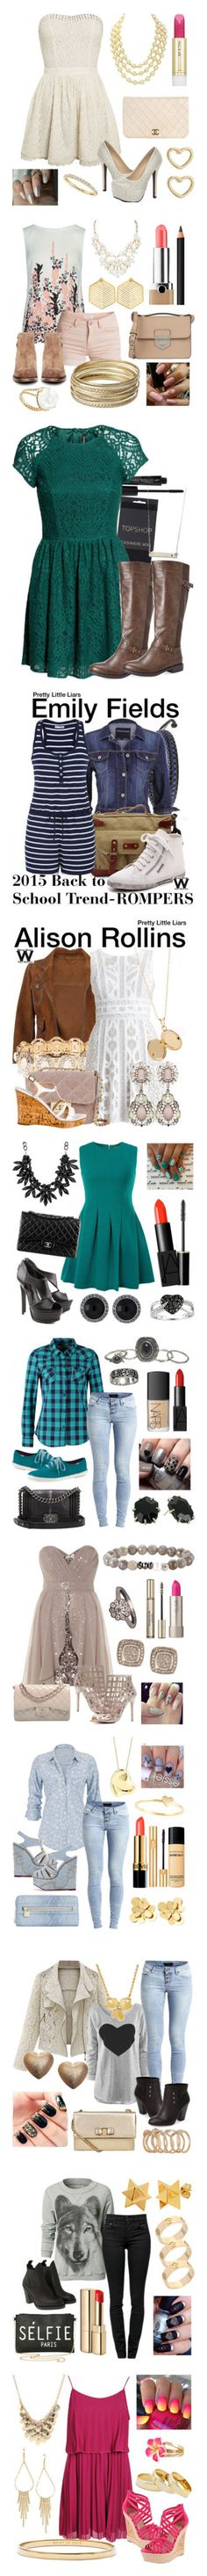 """""""Sets I Like 6"""" by katherine97-1 ❤ liked on Polyvore featuring Superdry, CO, Chanel, Blue Nile, Marc by Marc Jacobs, Paul & Joe, Pieces, H by Hudson, Steve Madden and Kasturjewels"""